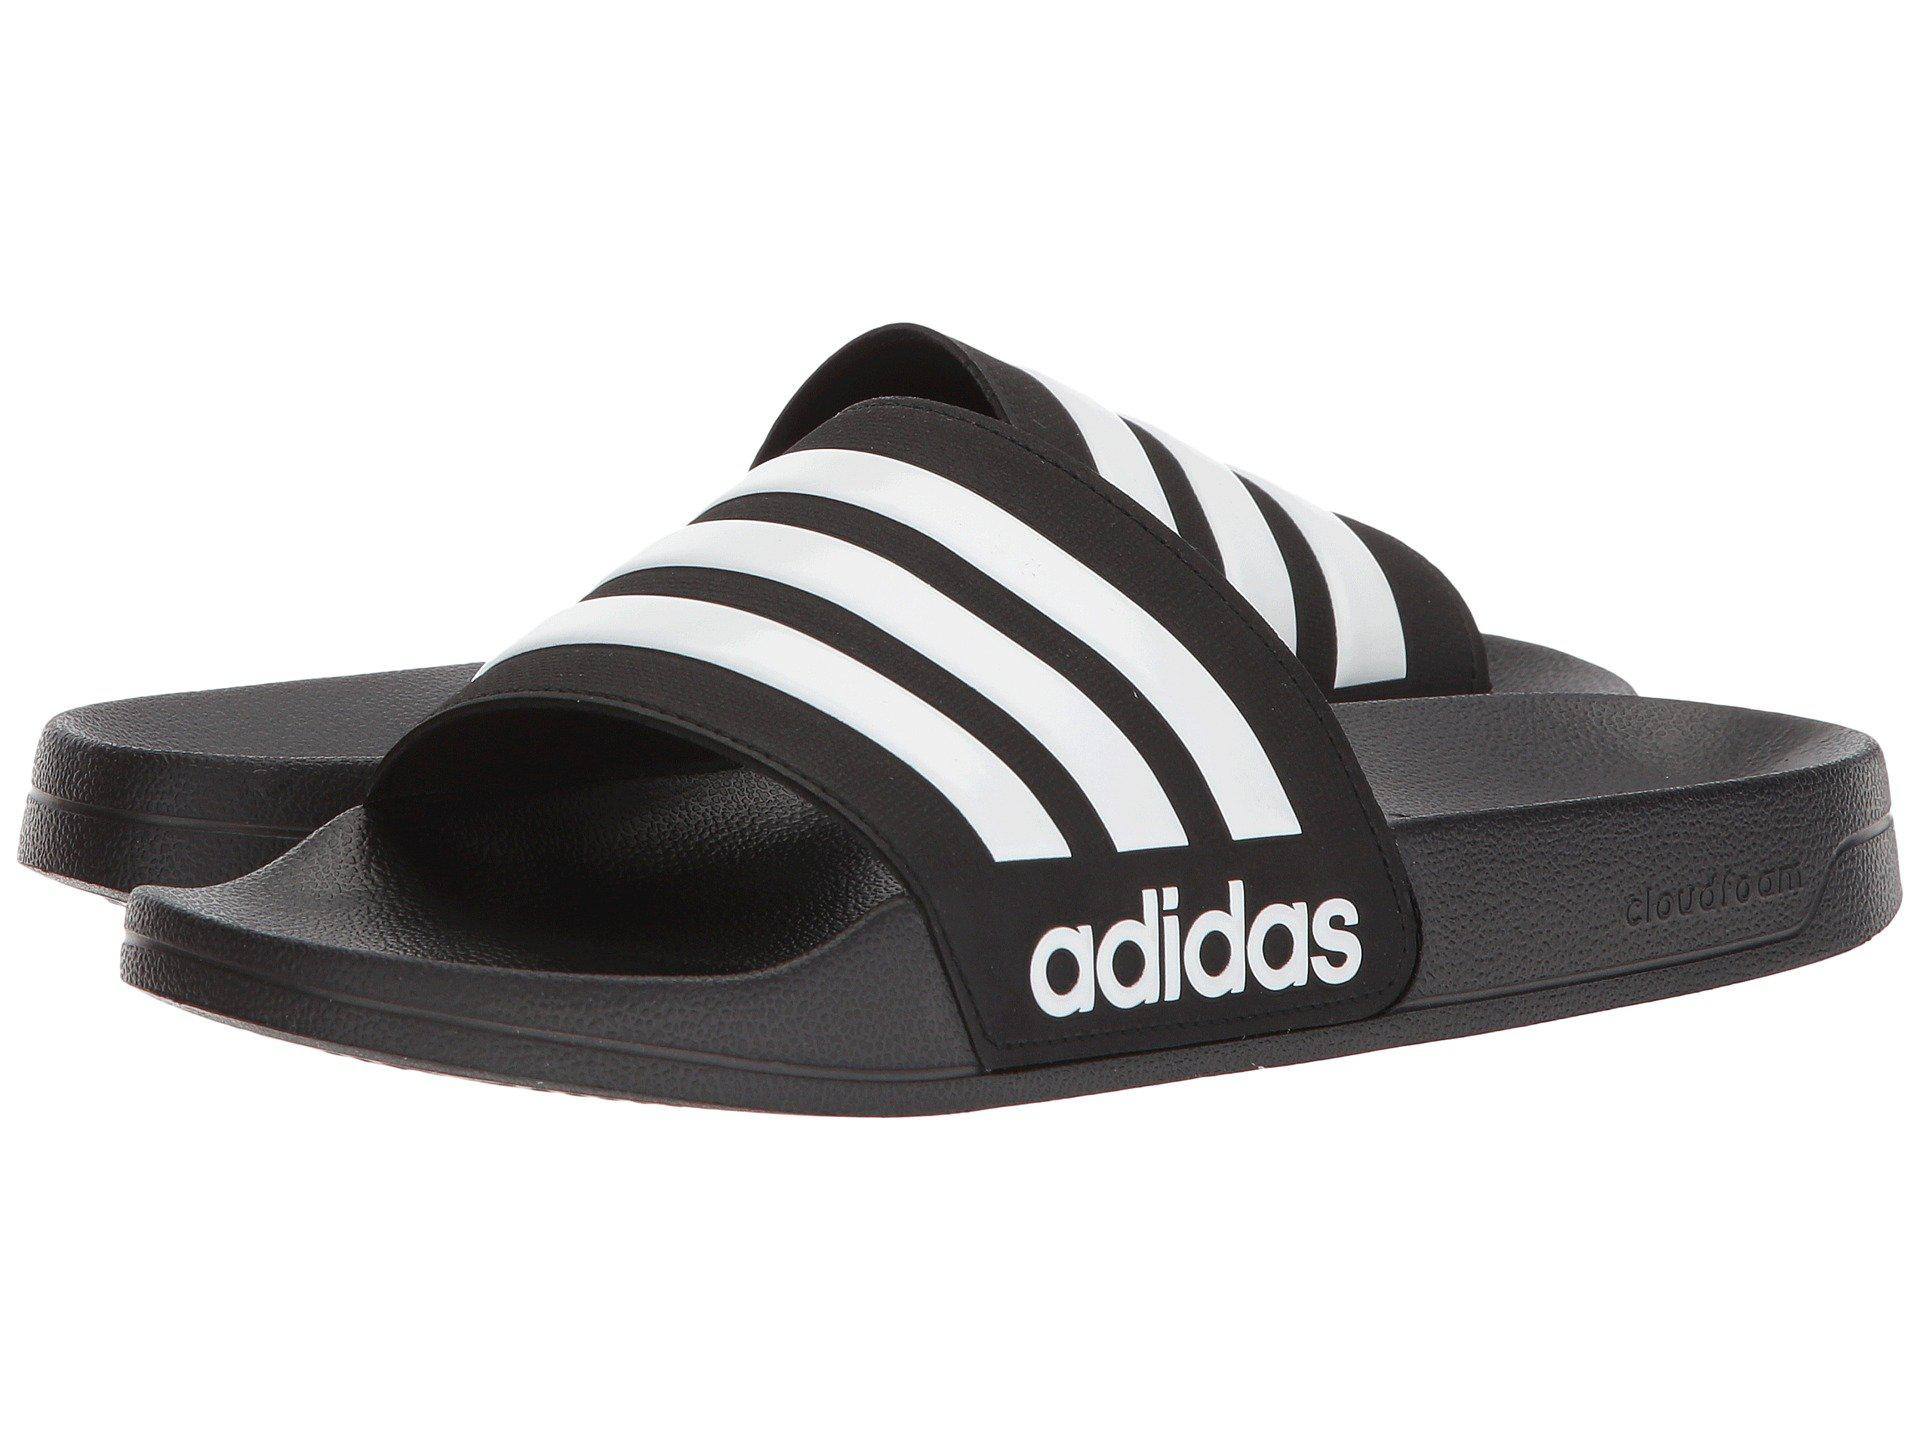 3d449689e3d6c3 Adidas - Adilette Cf (black white black) Men s Slide Shoes for Men. View  fullscreen